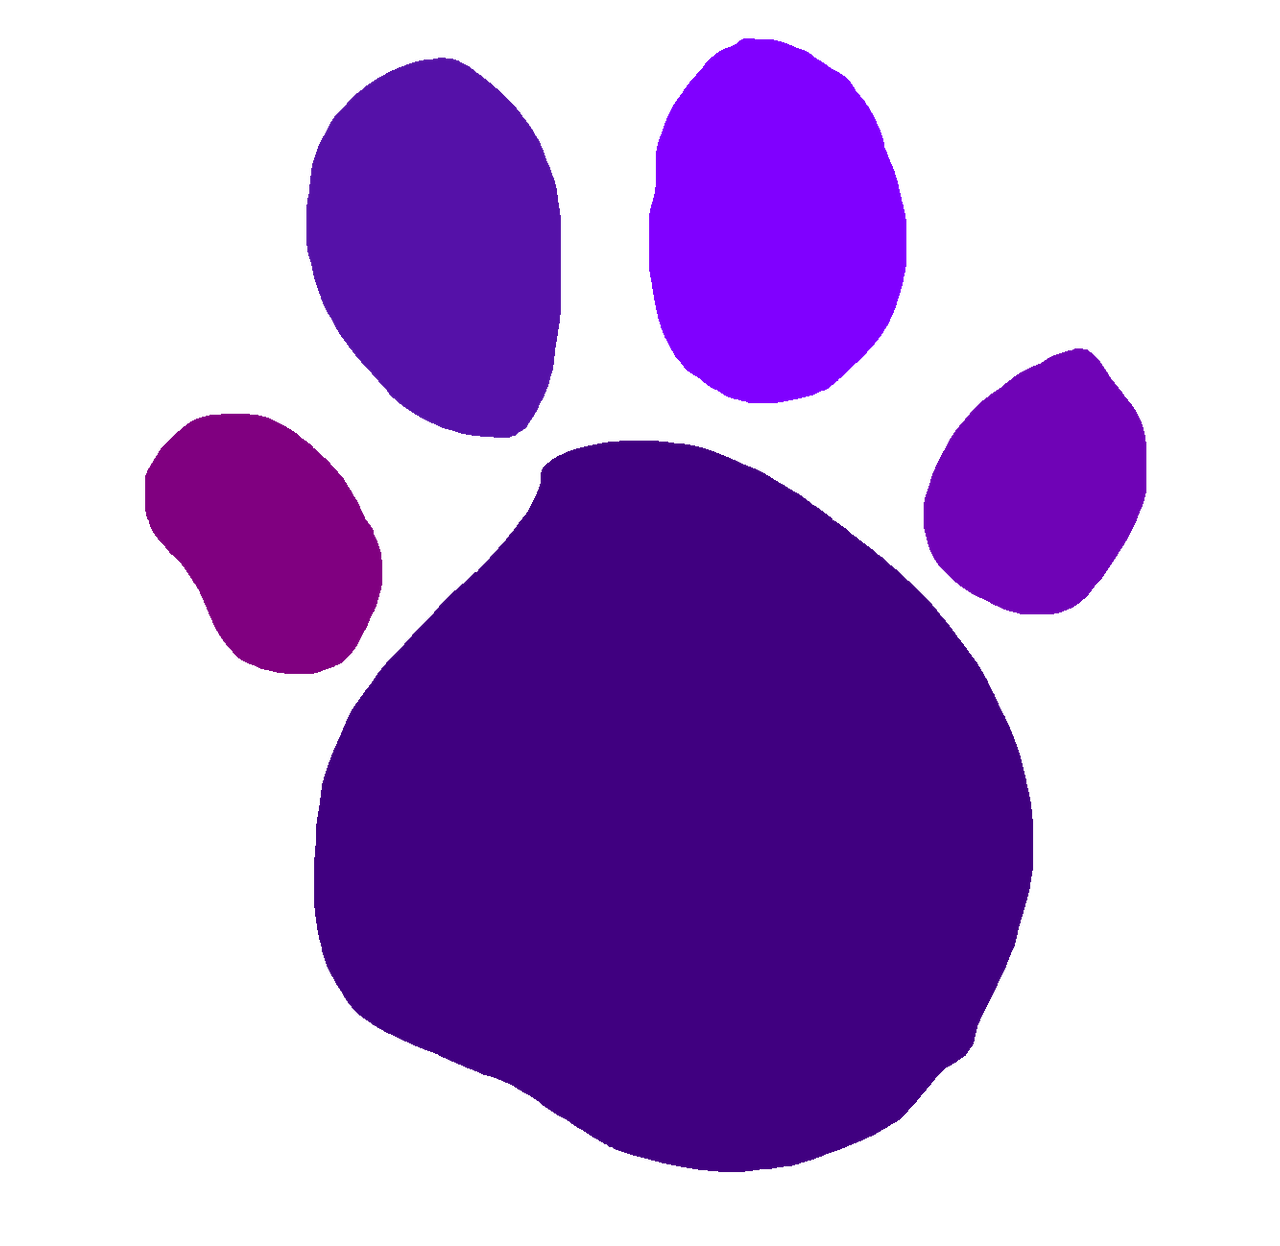 Purple S Paw Print From Growing Up With Purple By Brandontu1998 On Deviantart Paw print art, cat puppy dachshund paw printing, claws transparent background png clipart. paw print from growing up with purple